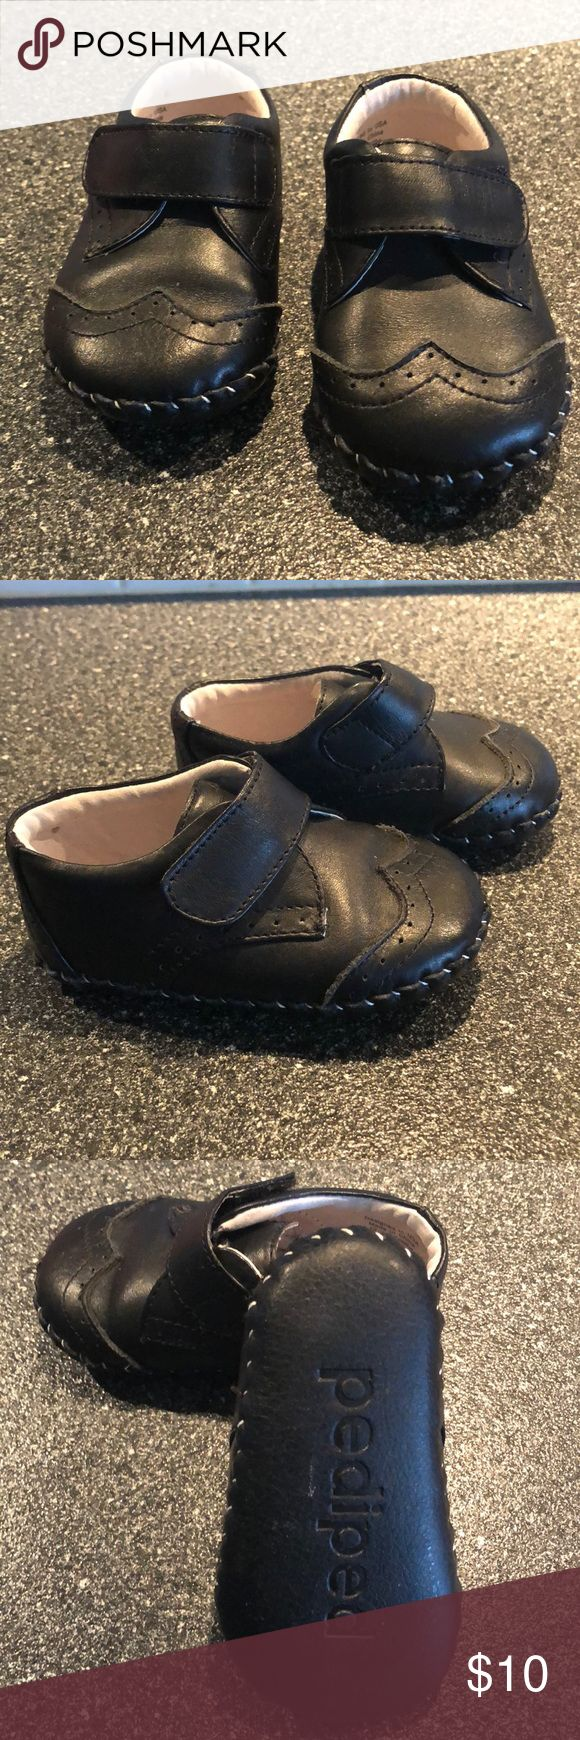 Pediped Black Leather Shoes - Unisex Great black Pediped shoes. Marked as size 12/18 months. My daughter wore when she was wearing a 4C. Wore Once for picture day. EUC pediped Shoes Dress Shoes